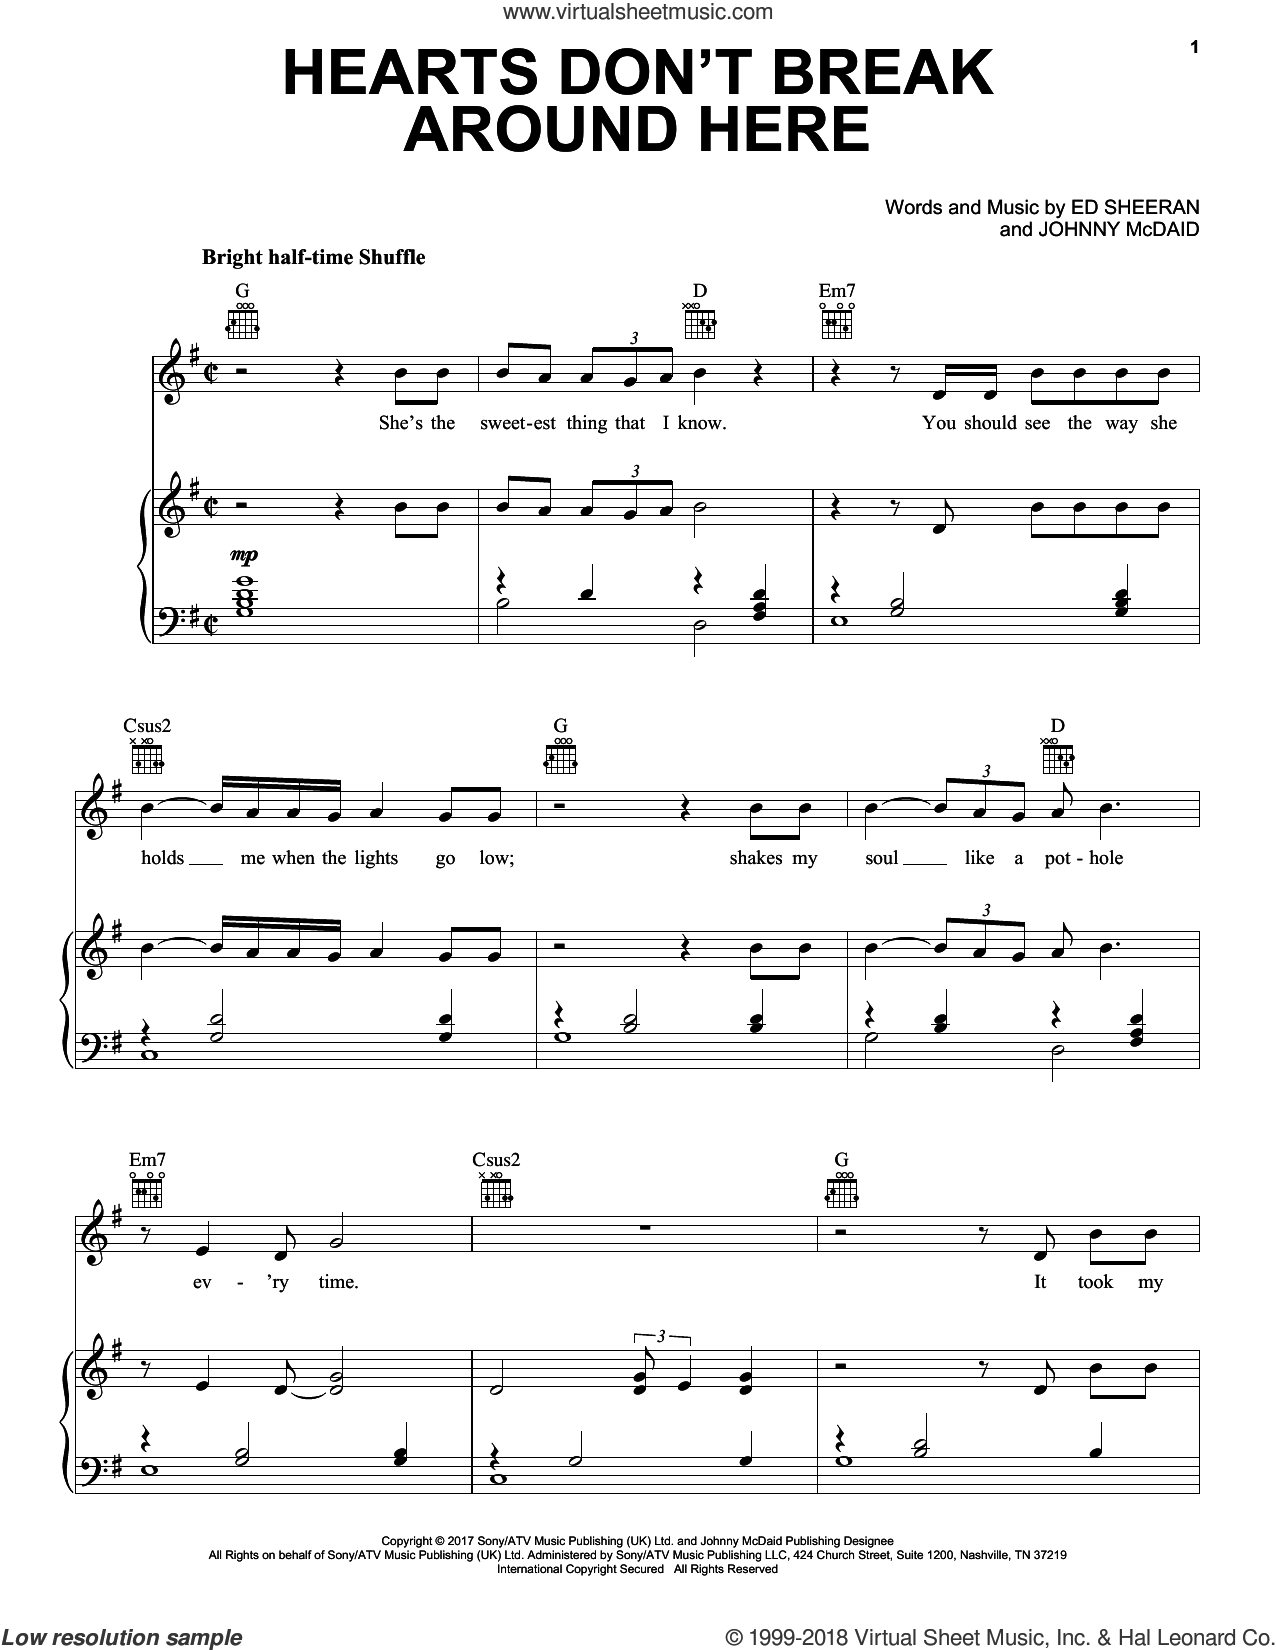 Hearts Don't Break Around Here sheet music for voice, piano or guitar by Ed Sheeran and Johnny McDaid, intermediate skill level